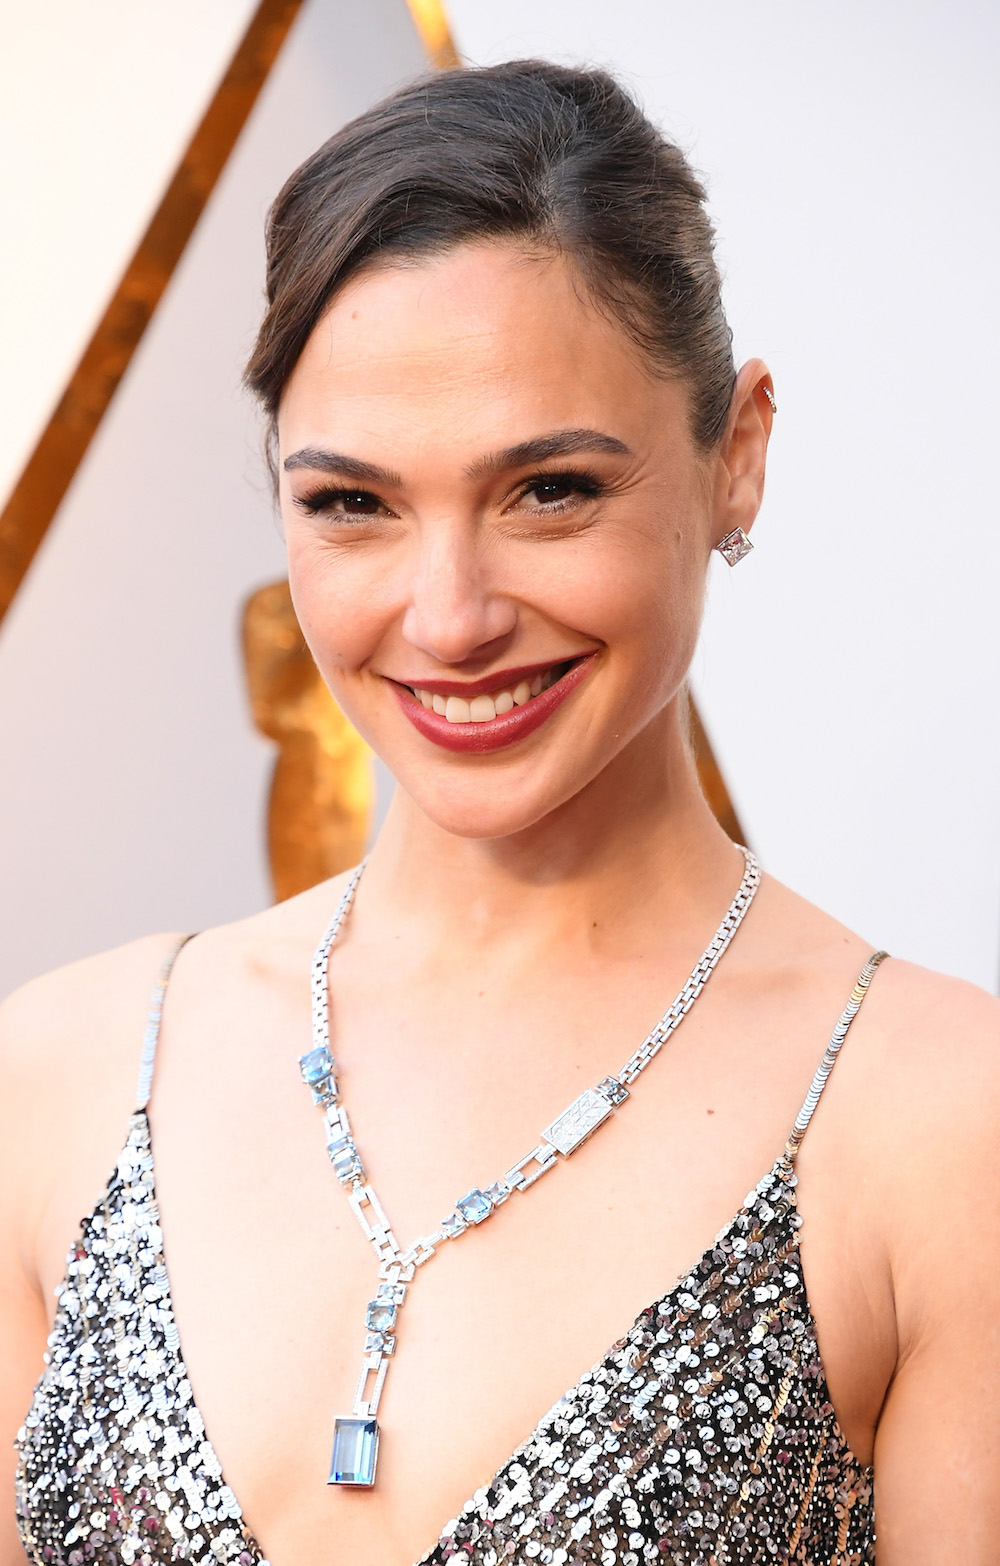 Gal gadot at the oscars close up nudes (17 photo), Boobs Celebrity image